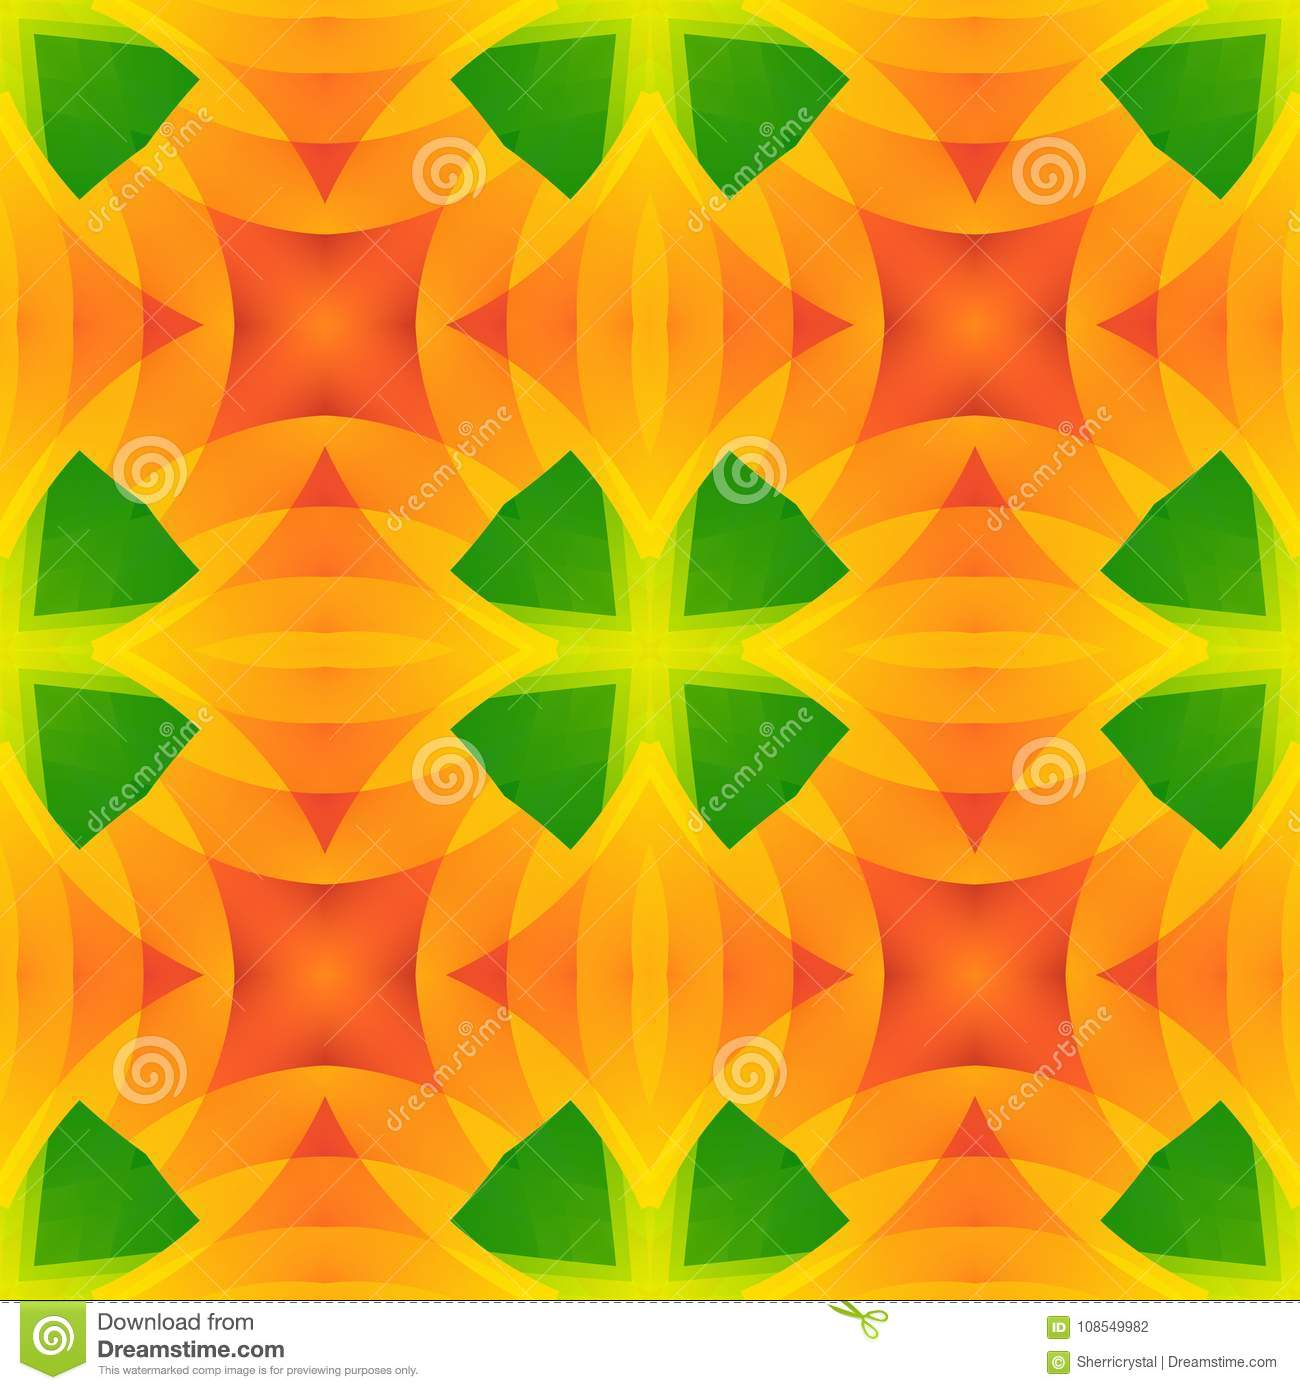 Vivid green orange abstract texture. Detailed background illustration. Seamless tile. Home decor fabric design sample. Tileable mo